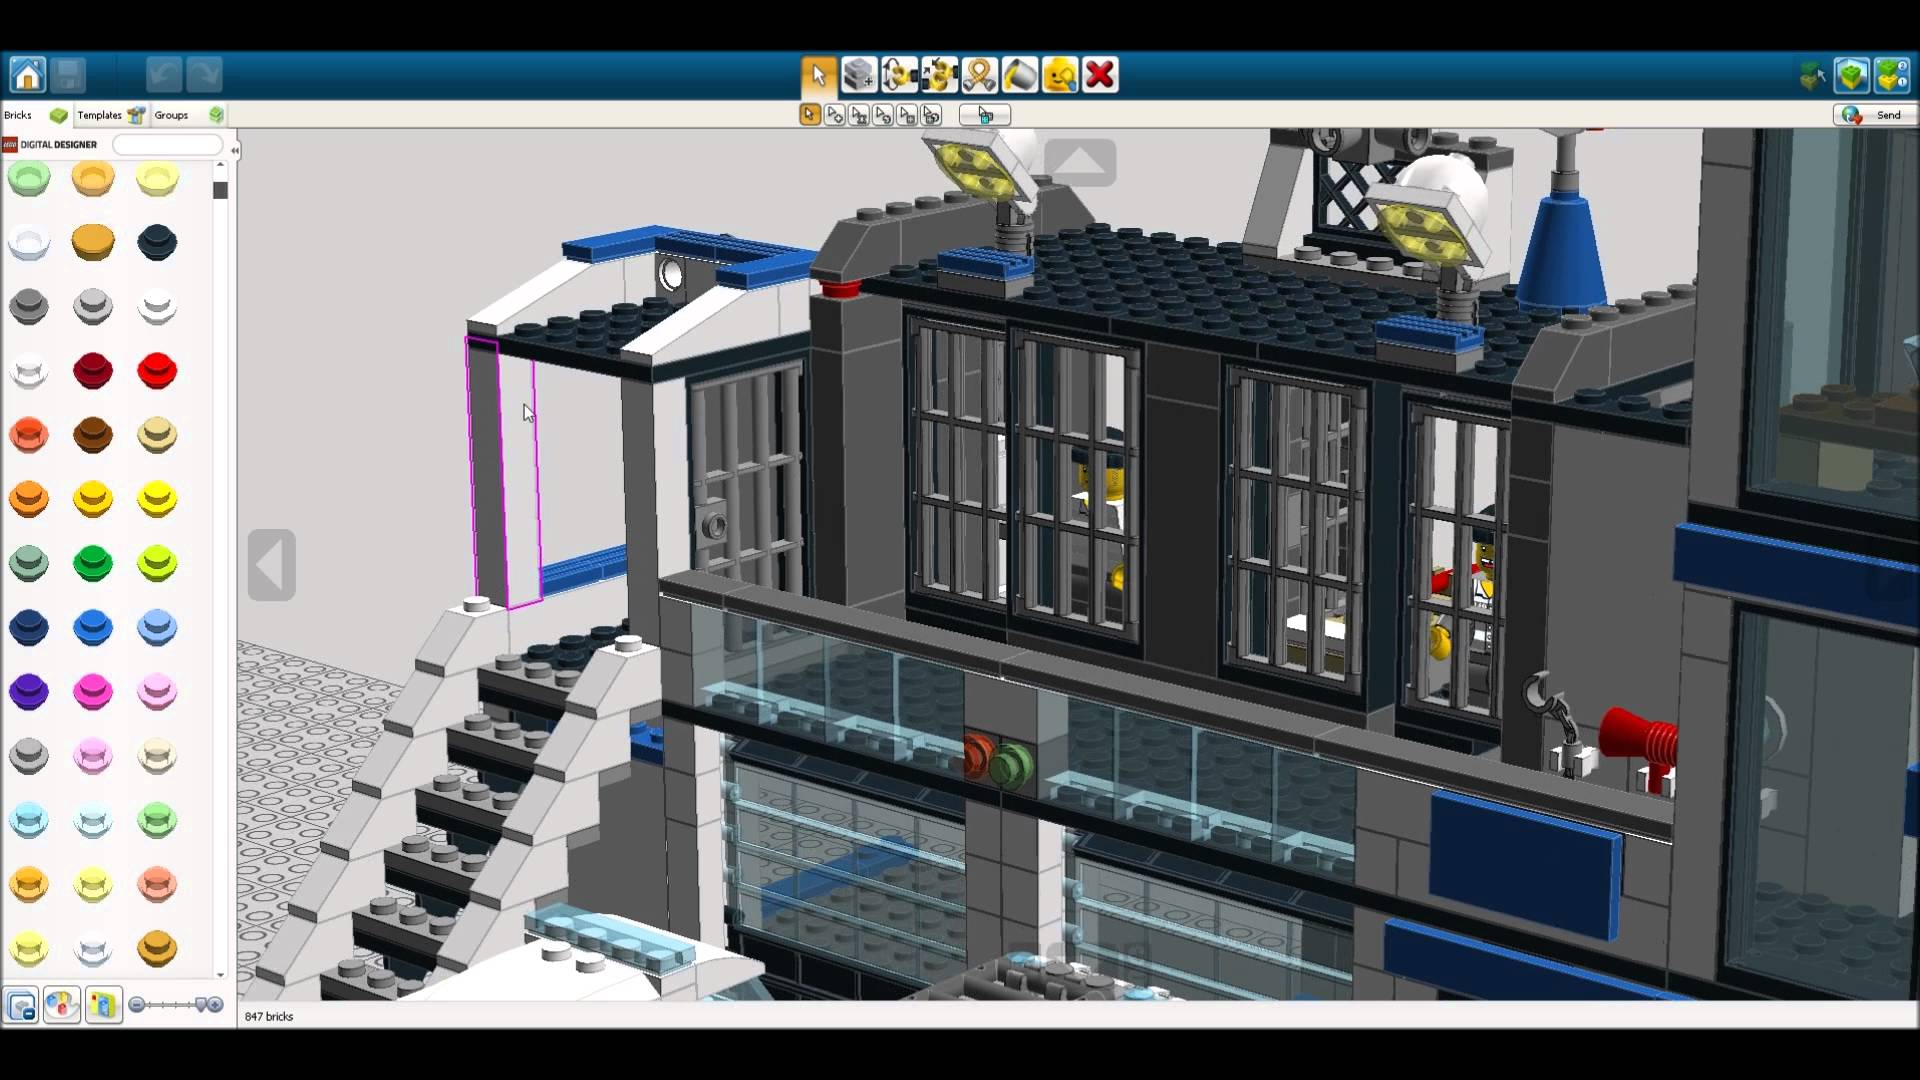 lego digital designer templates - lego digital designer lego worlds wikia fandom powered